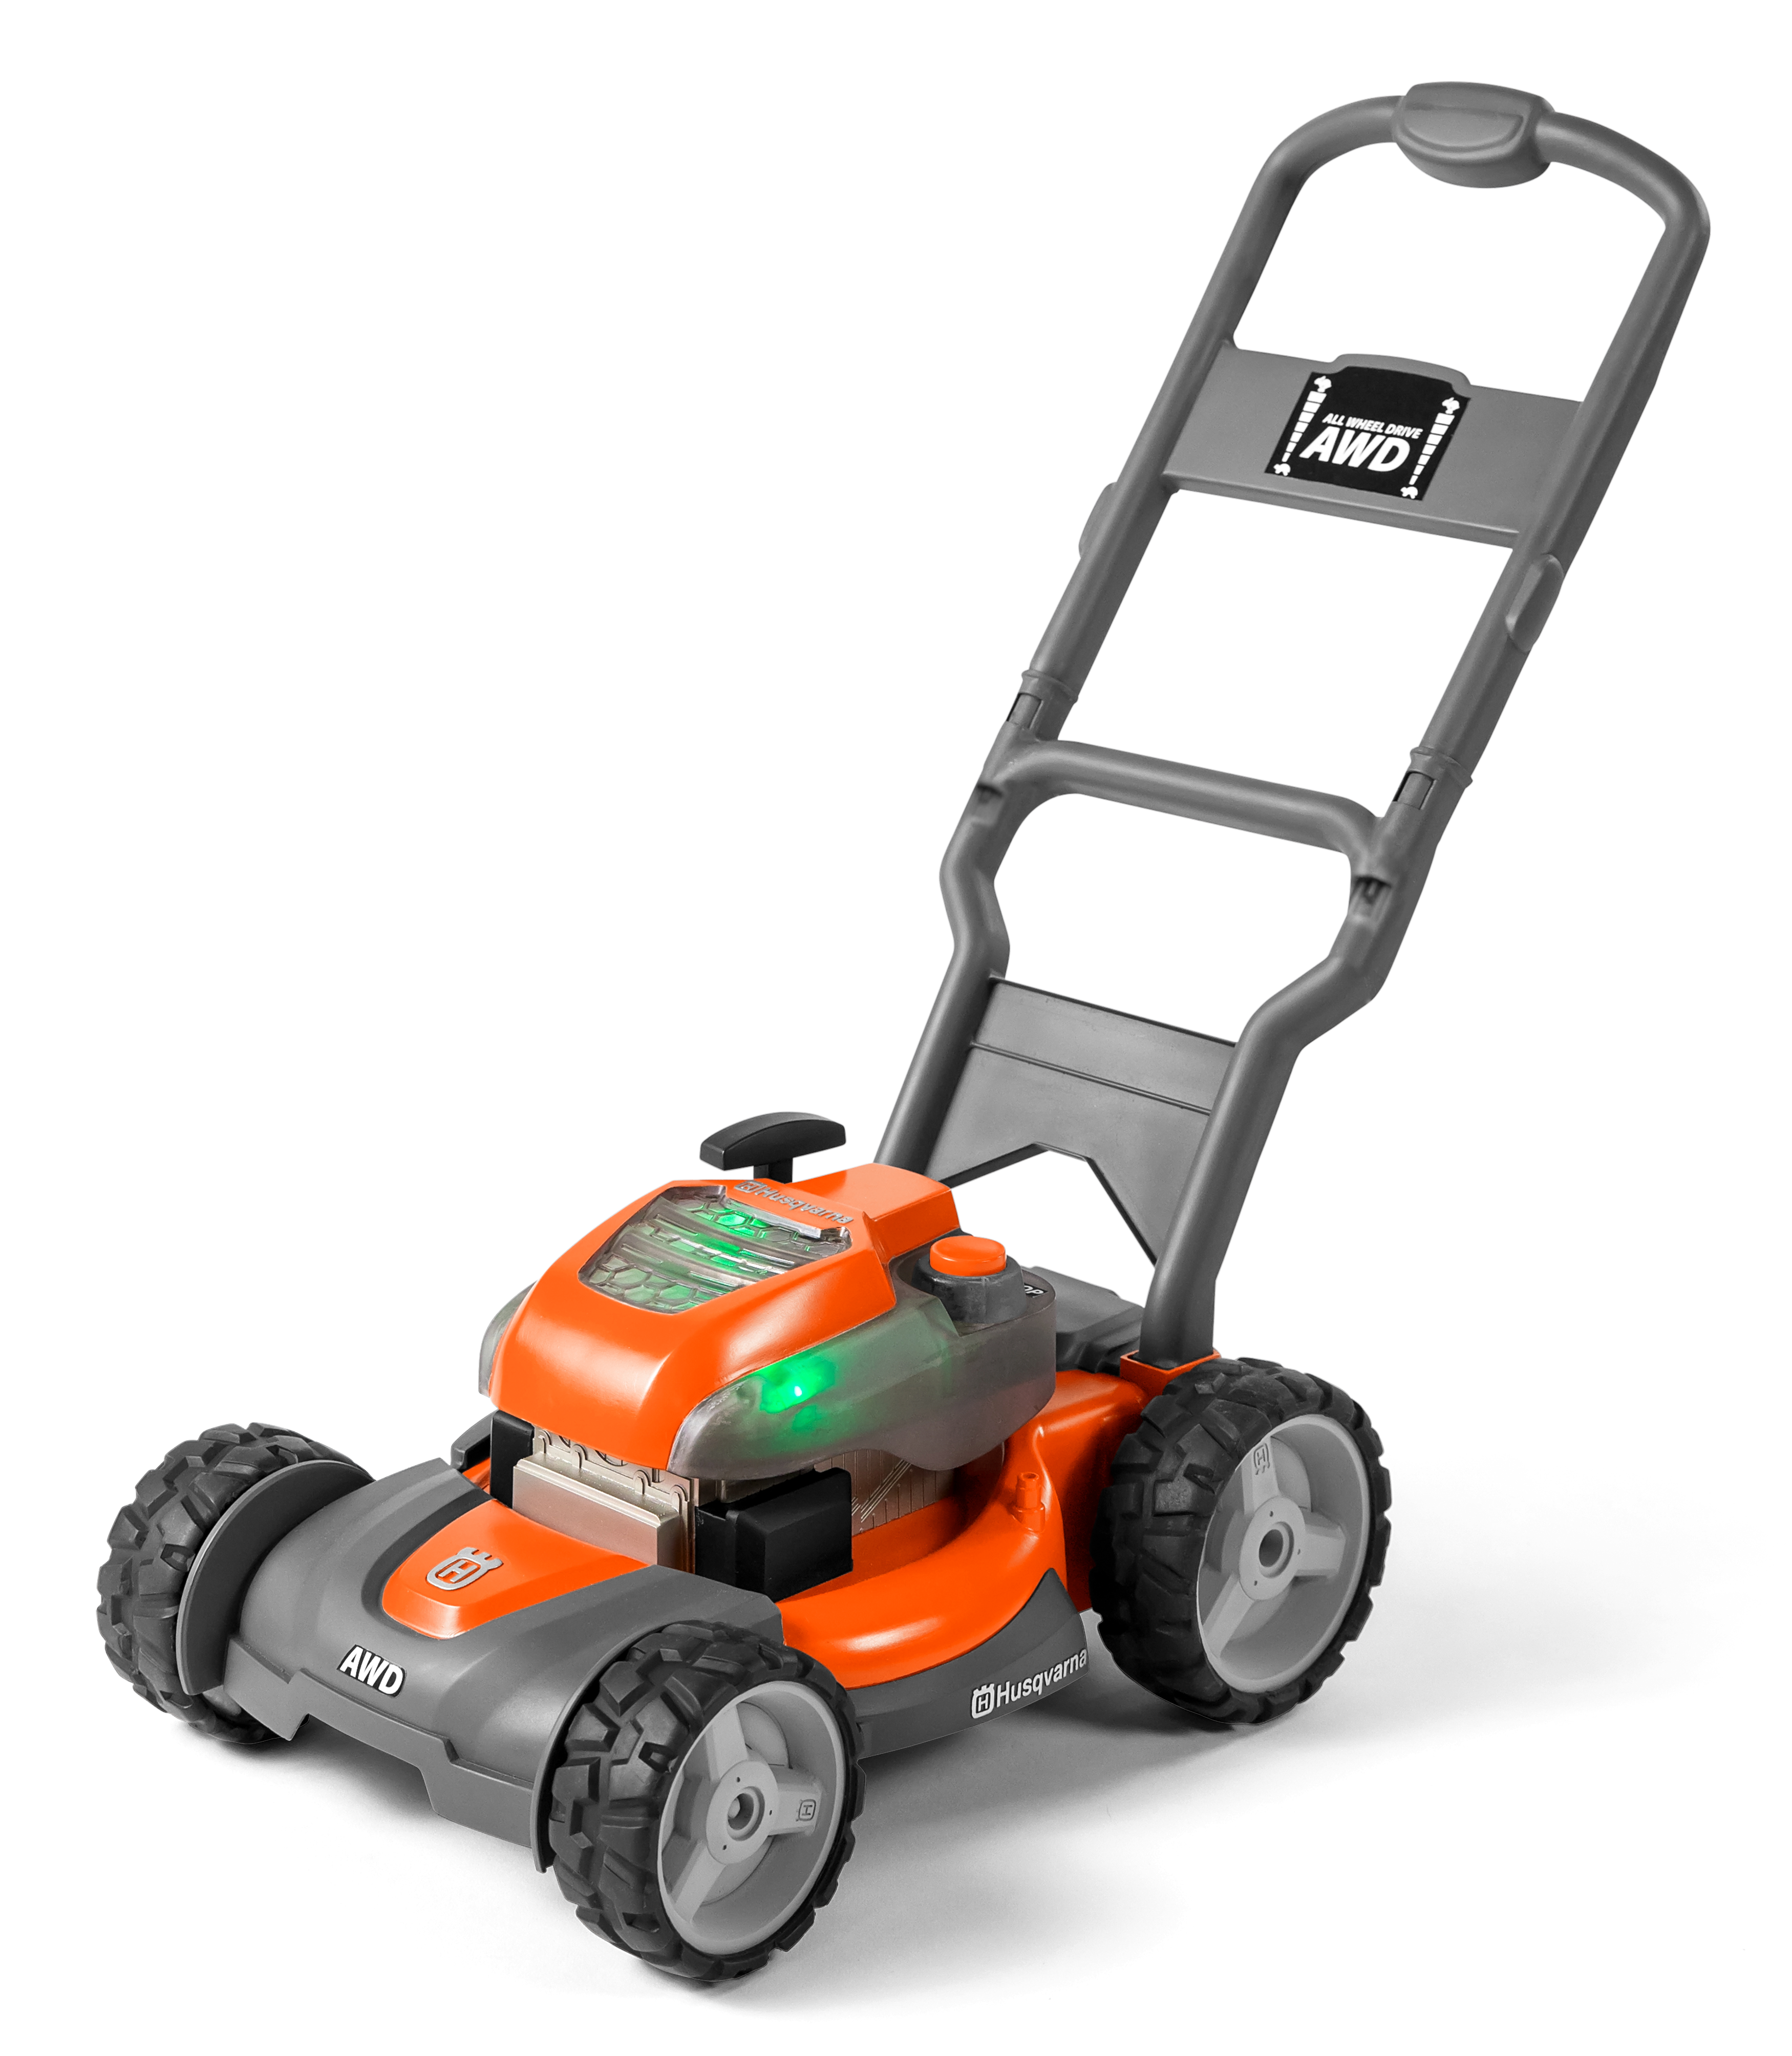 Image for Toy Lawn Mower                                                                                                                   from HusqvarnaB2C